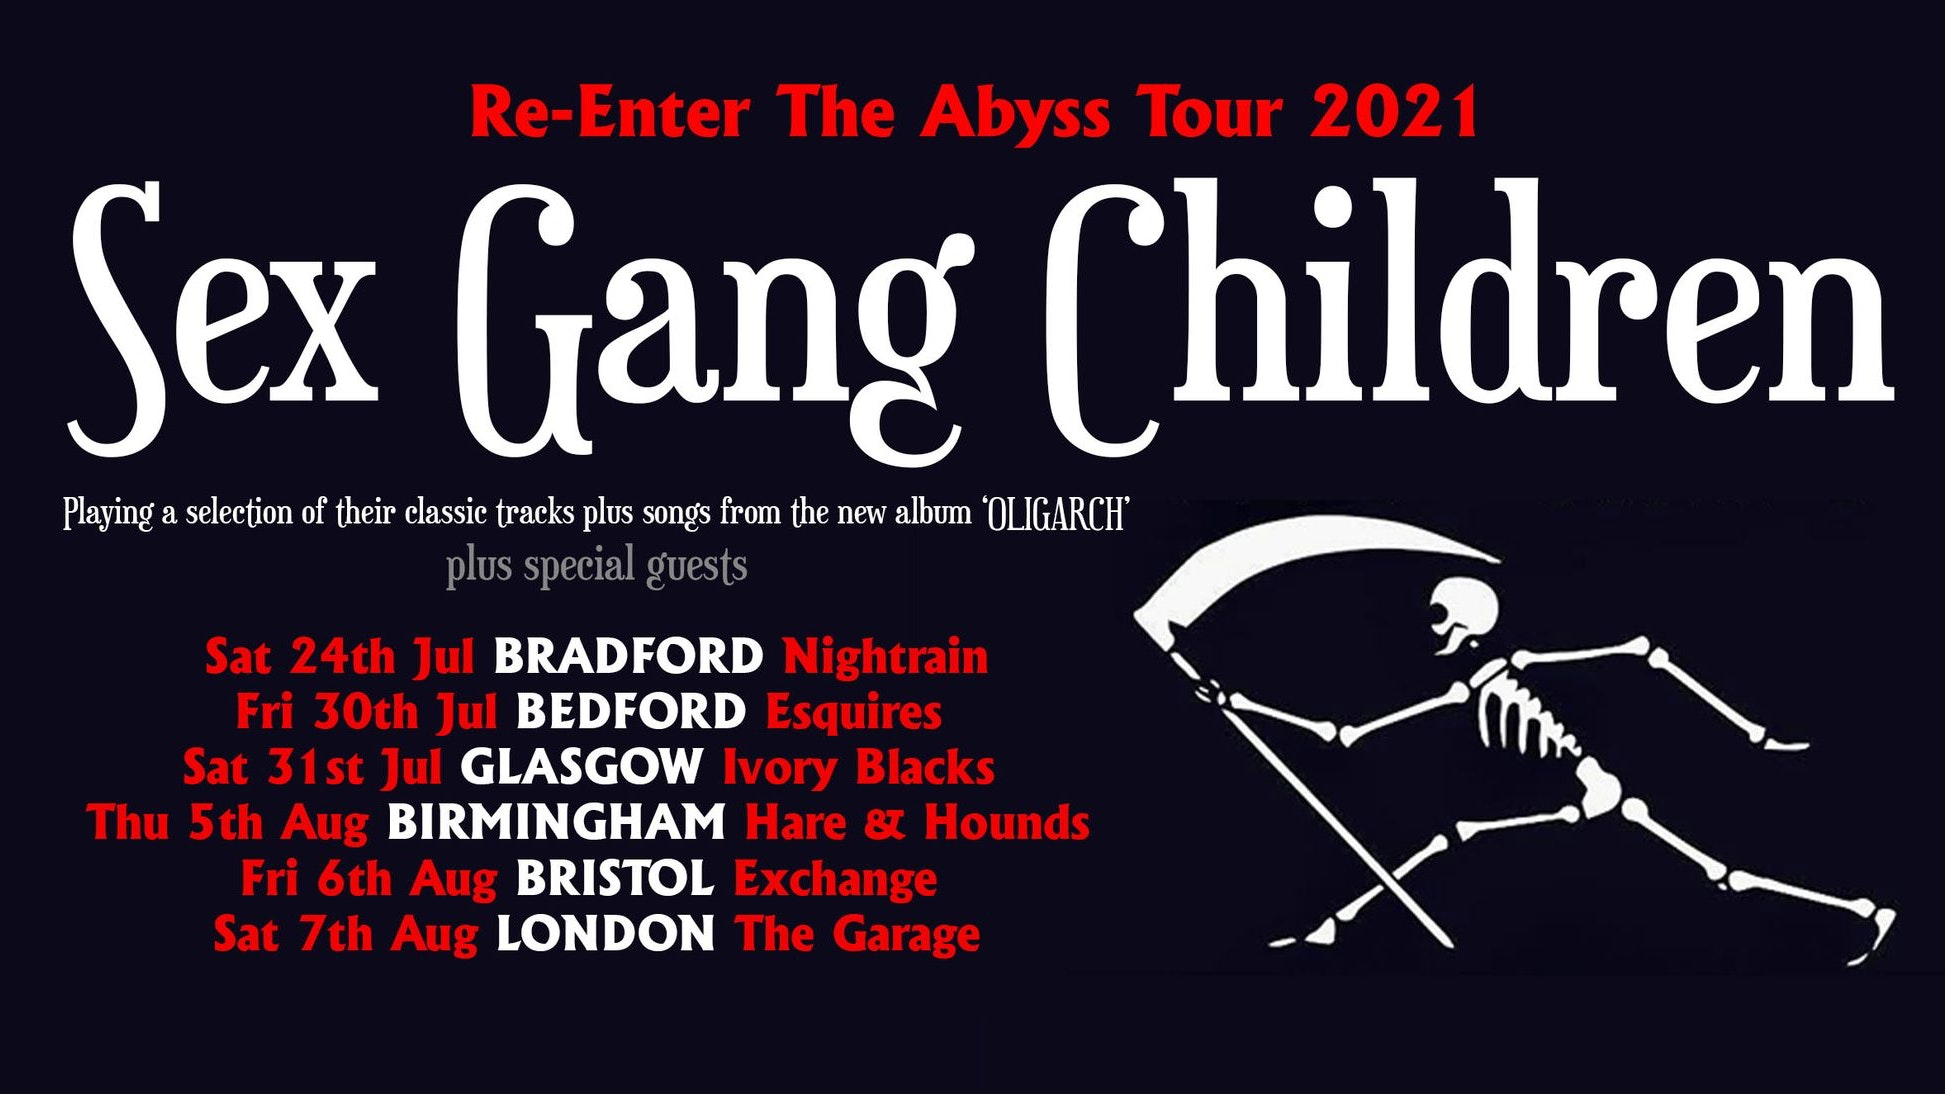 Sex Gang Children Re-Enter The Abyss Tour 2021 – Glasgow